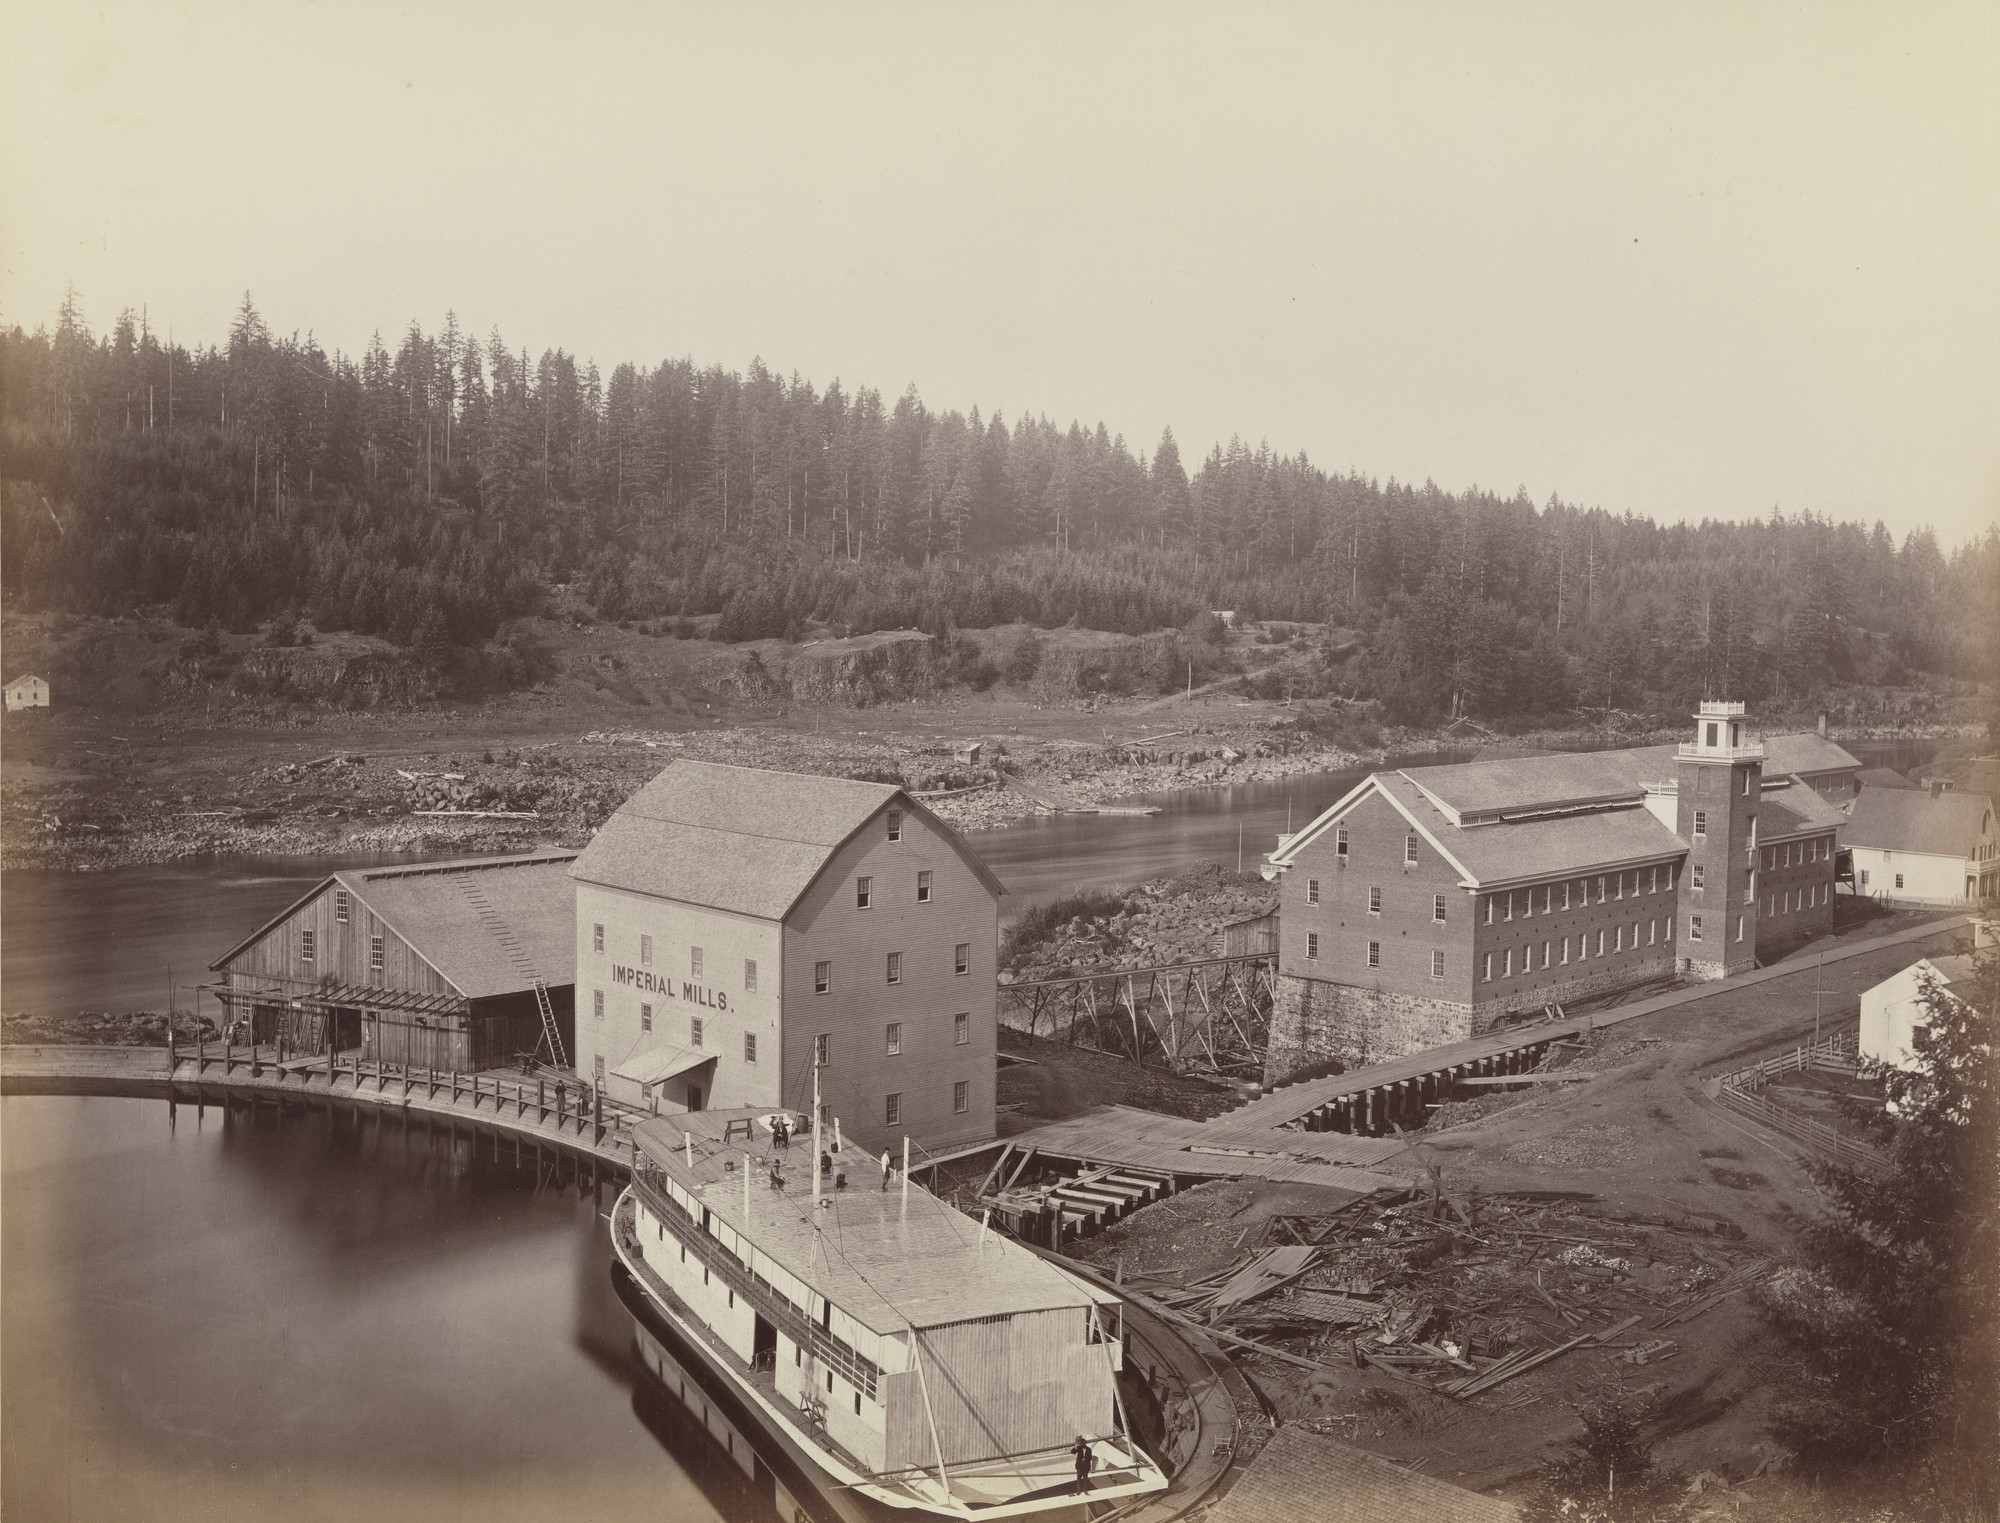 Carleton E. Watkins. Flour and Woolen Mills, Oregon City. 1867